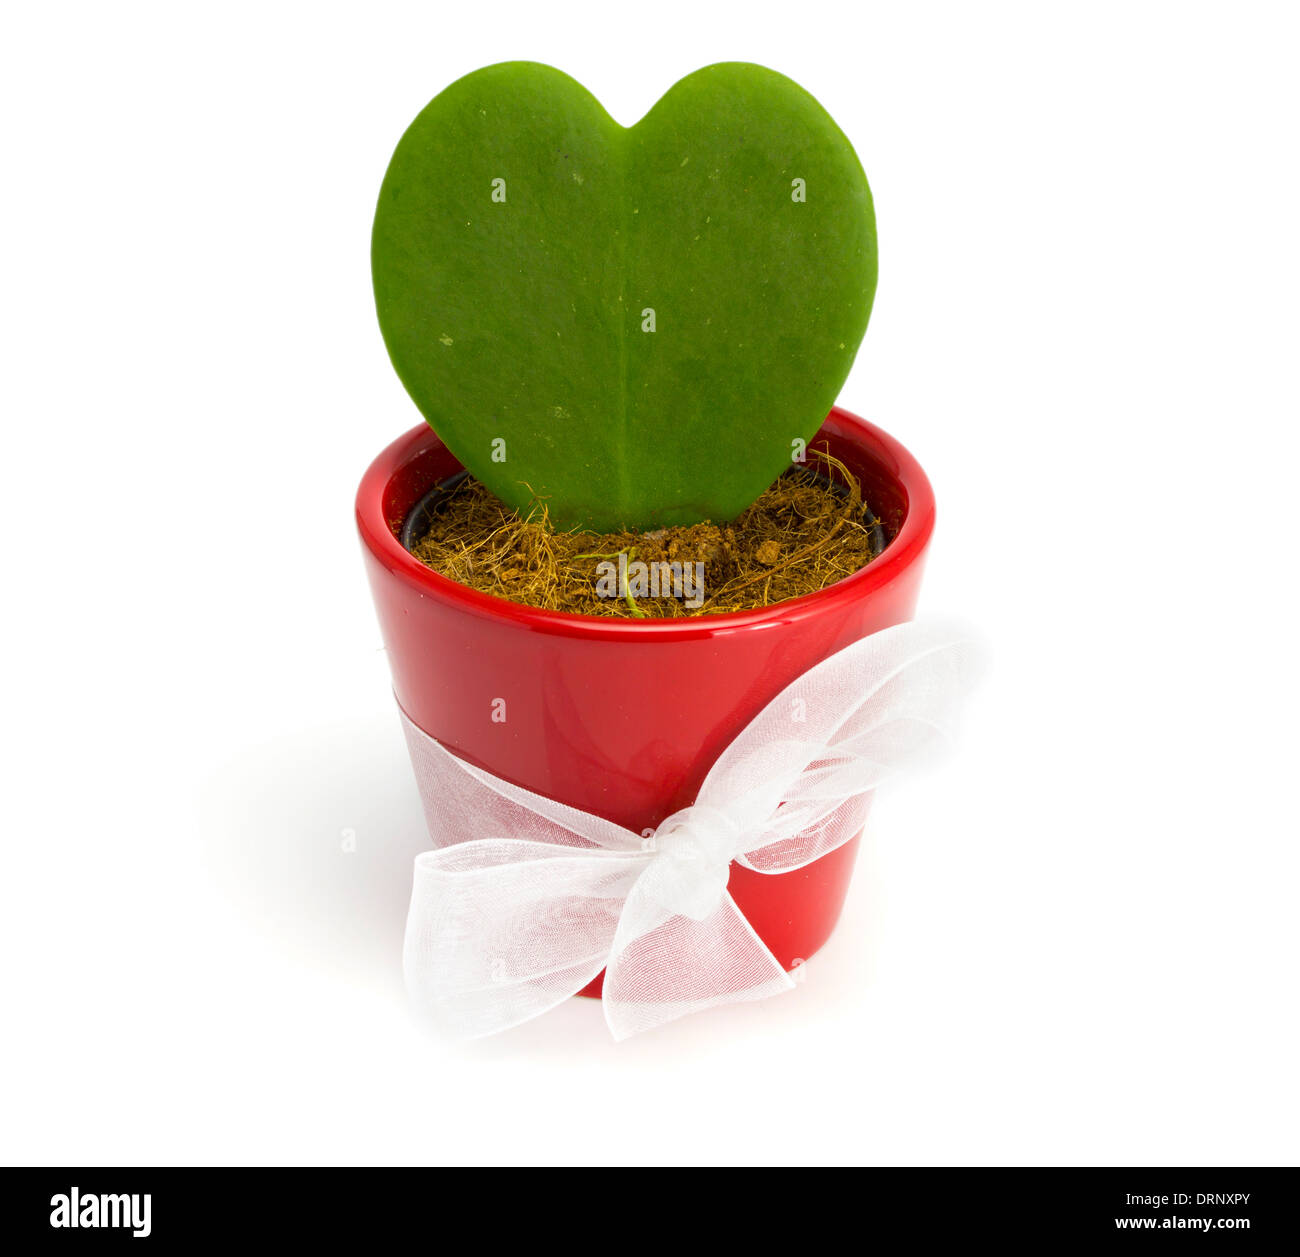 Cactus heart in a red pot on the white isolated background - Stock Image